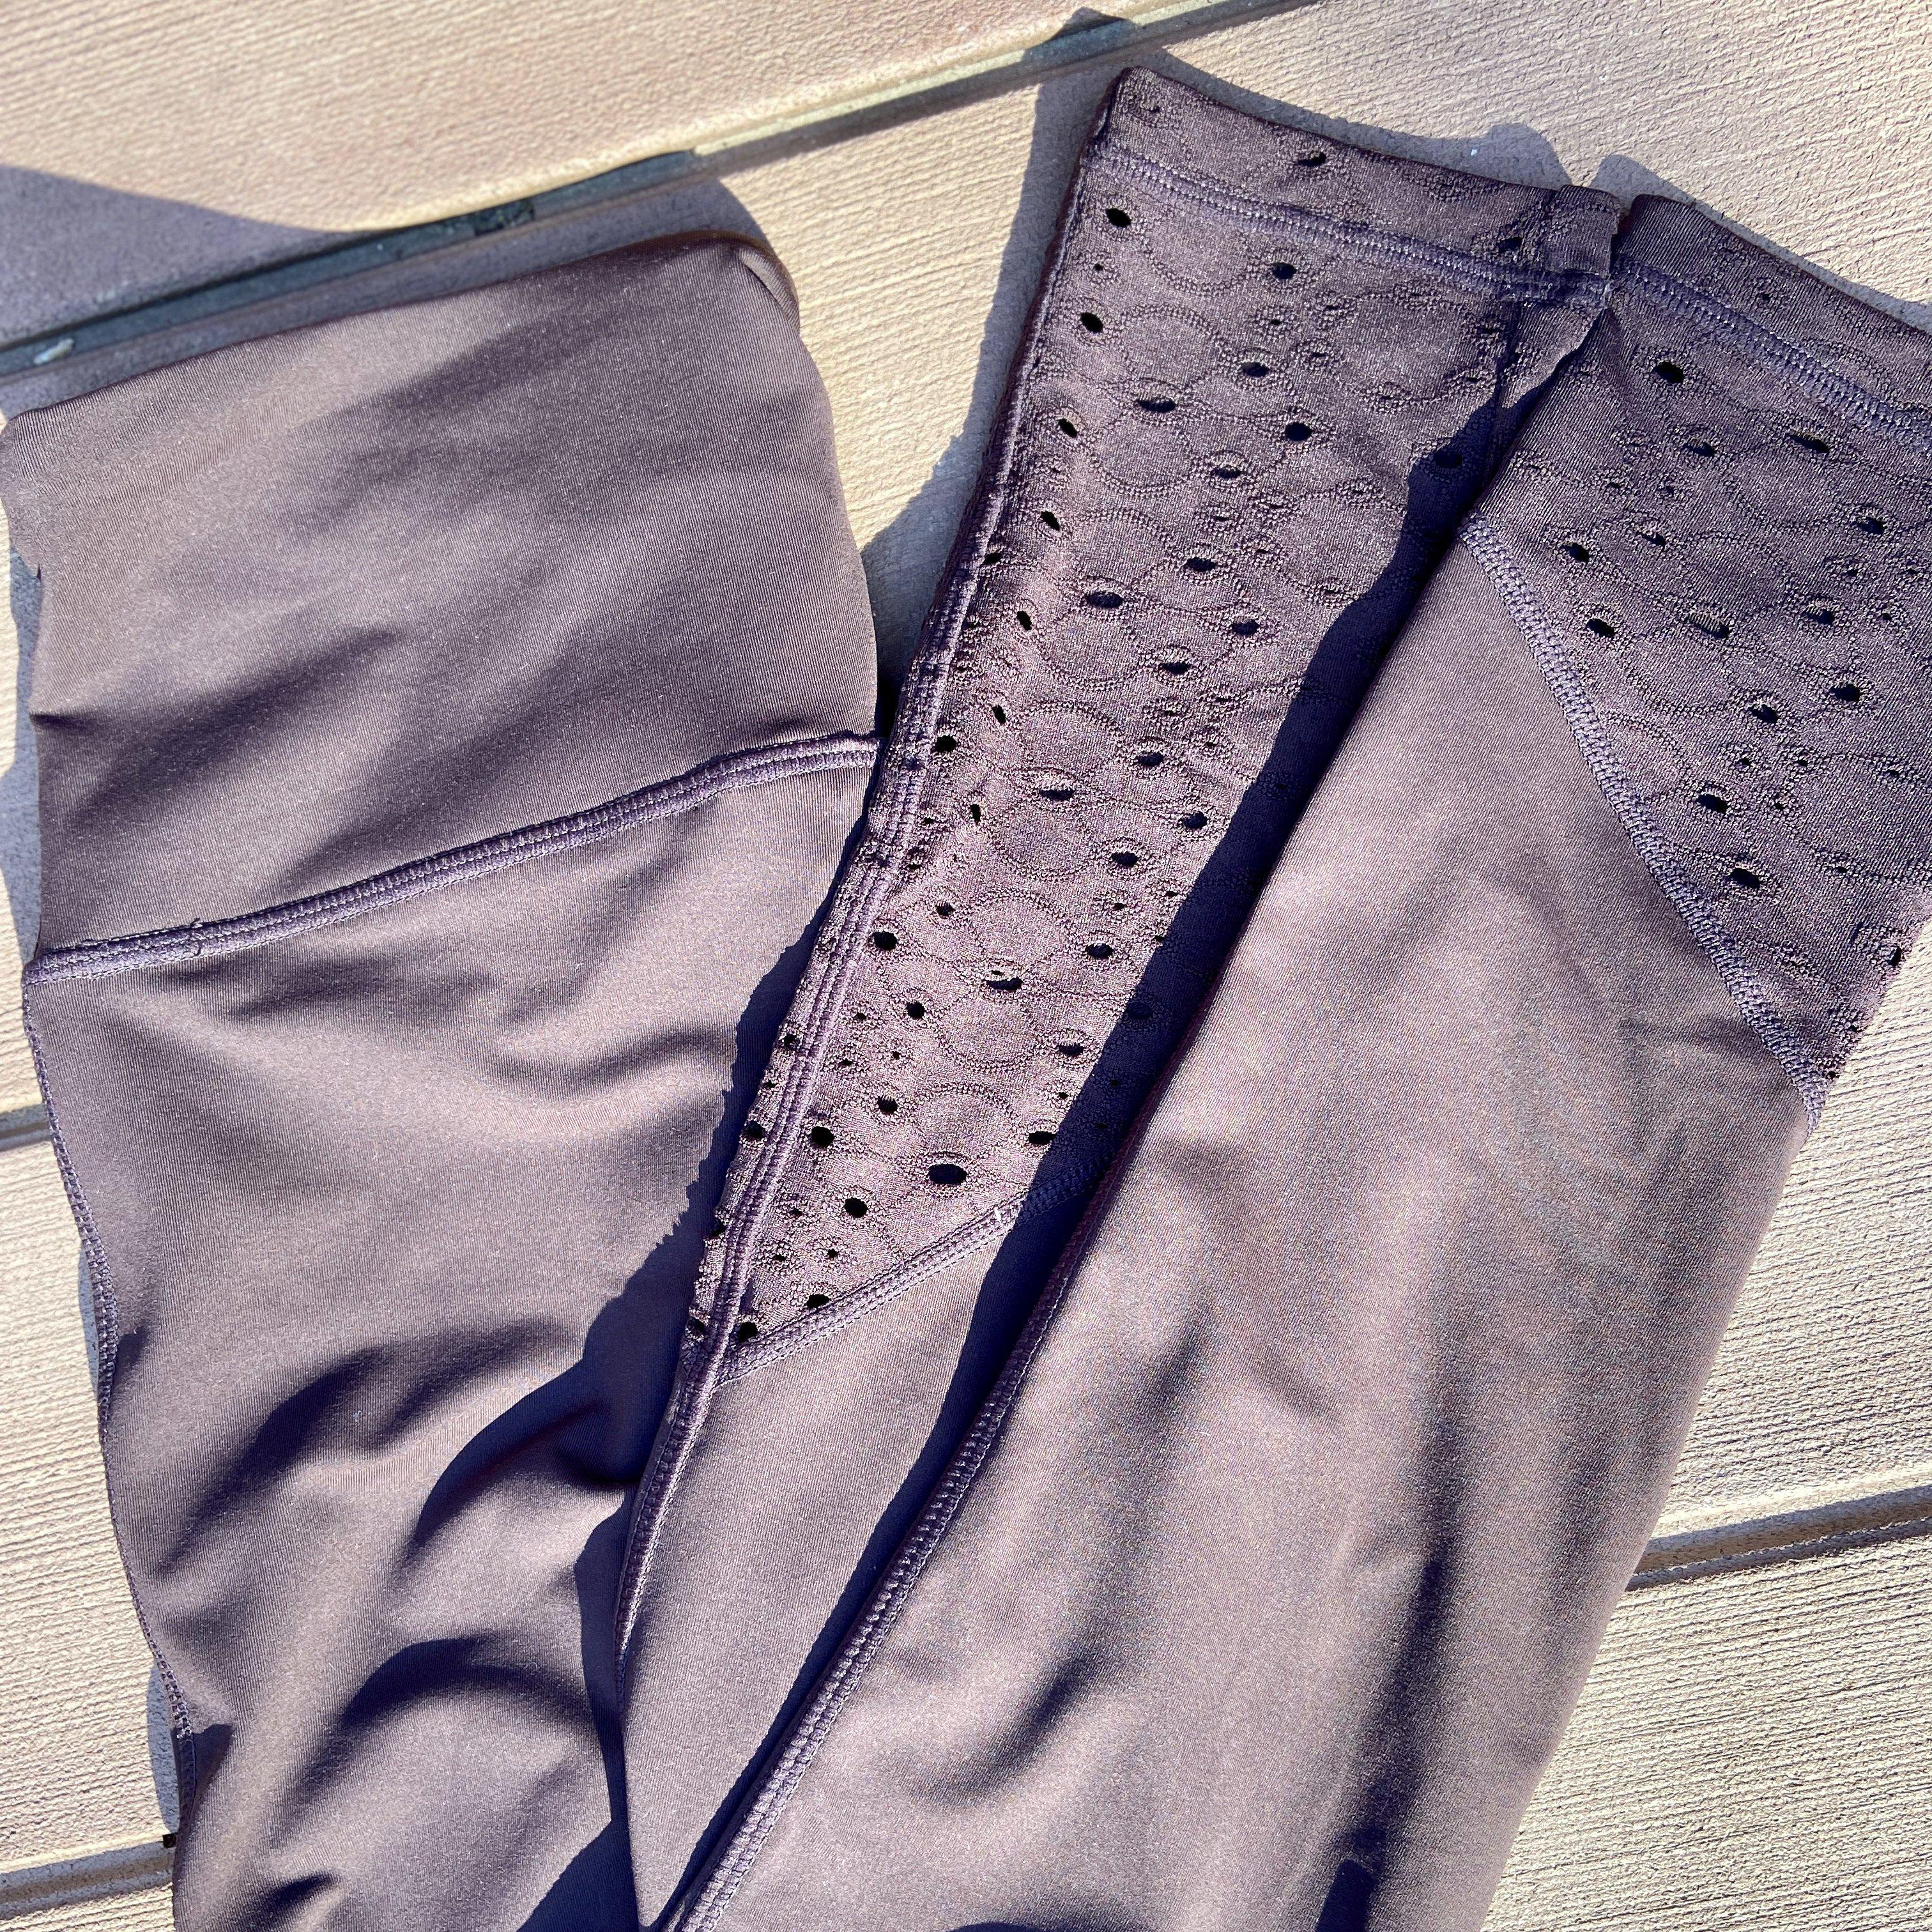 B-020 Lace Accent High Waist Leggings in Coffee